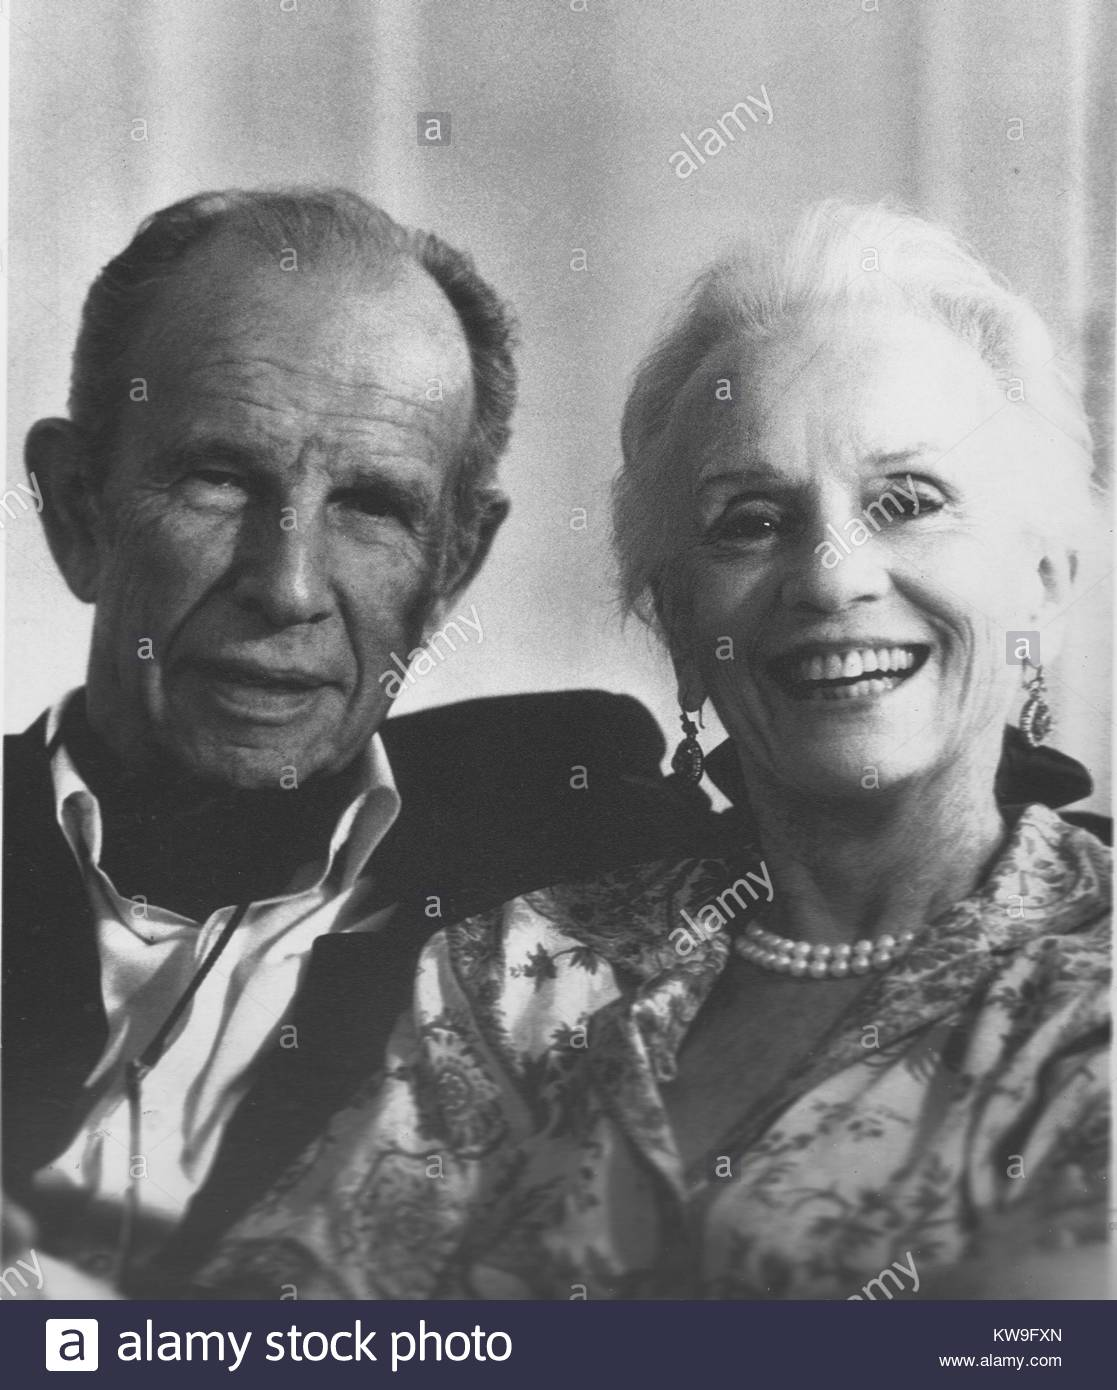 Hume Cronyn Hume Cronyn new pictures